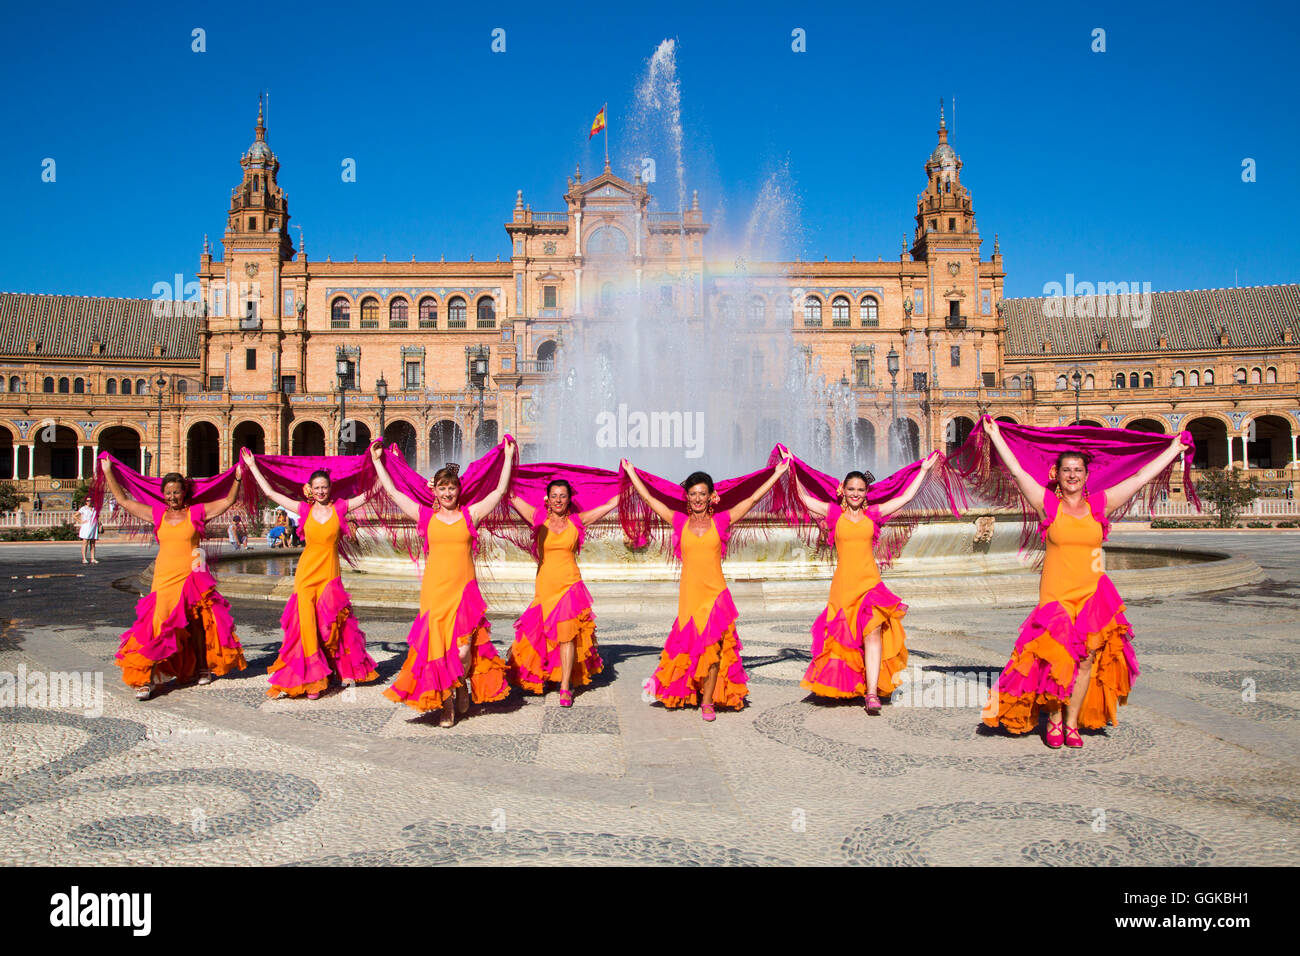 Flamenco Fuego dance group on Plaza de Espana in front of the fountain, Seville, Andalusia, Spain - Stock Image